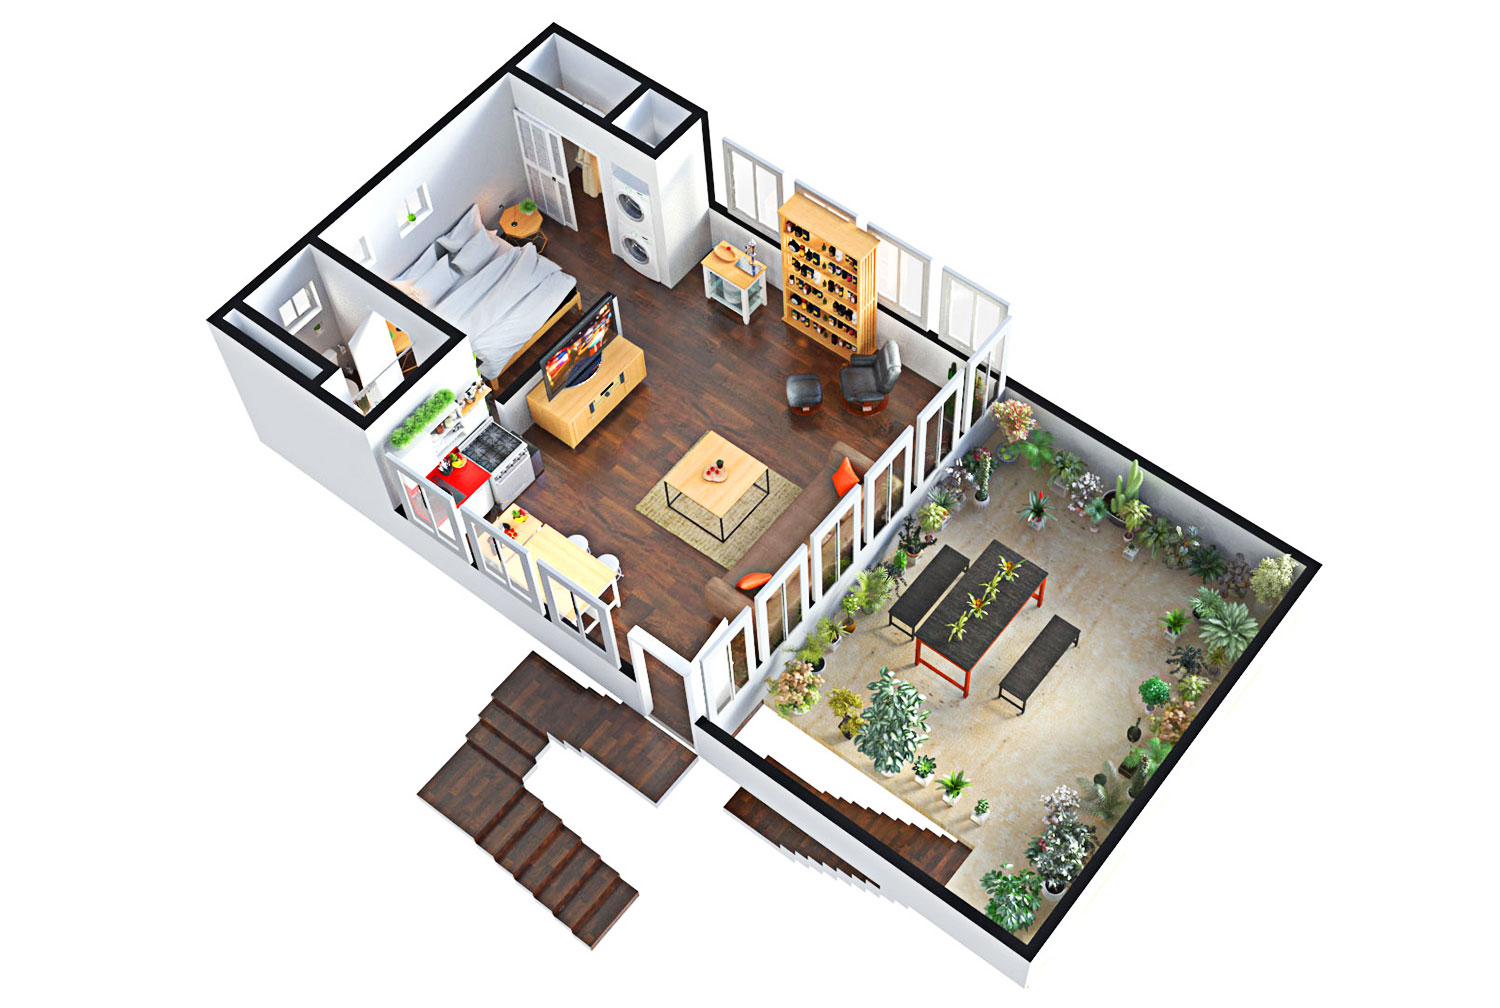 Architectural walkthrough: the true meaning of a 3d floor plan model